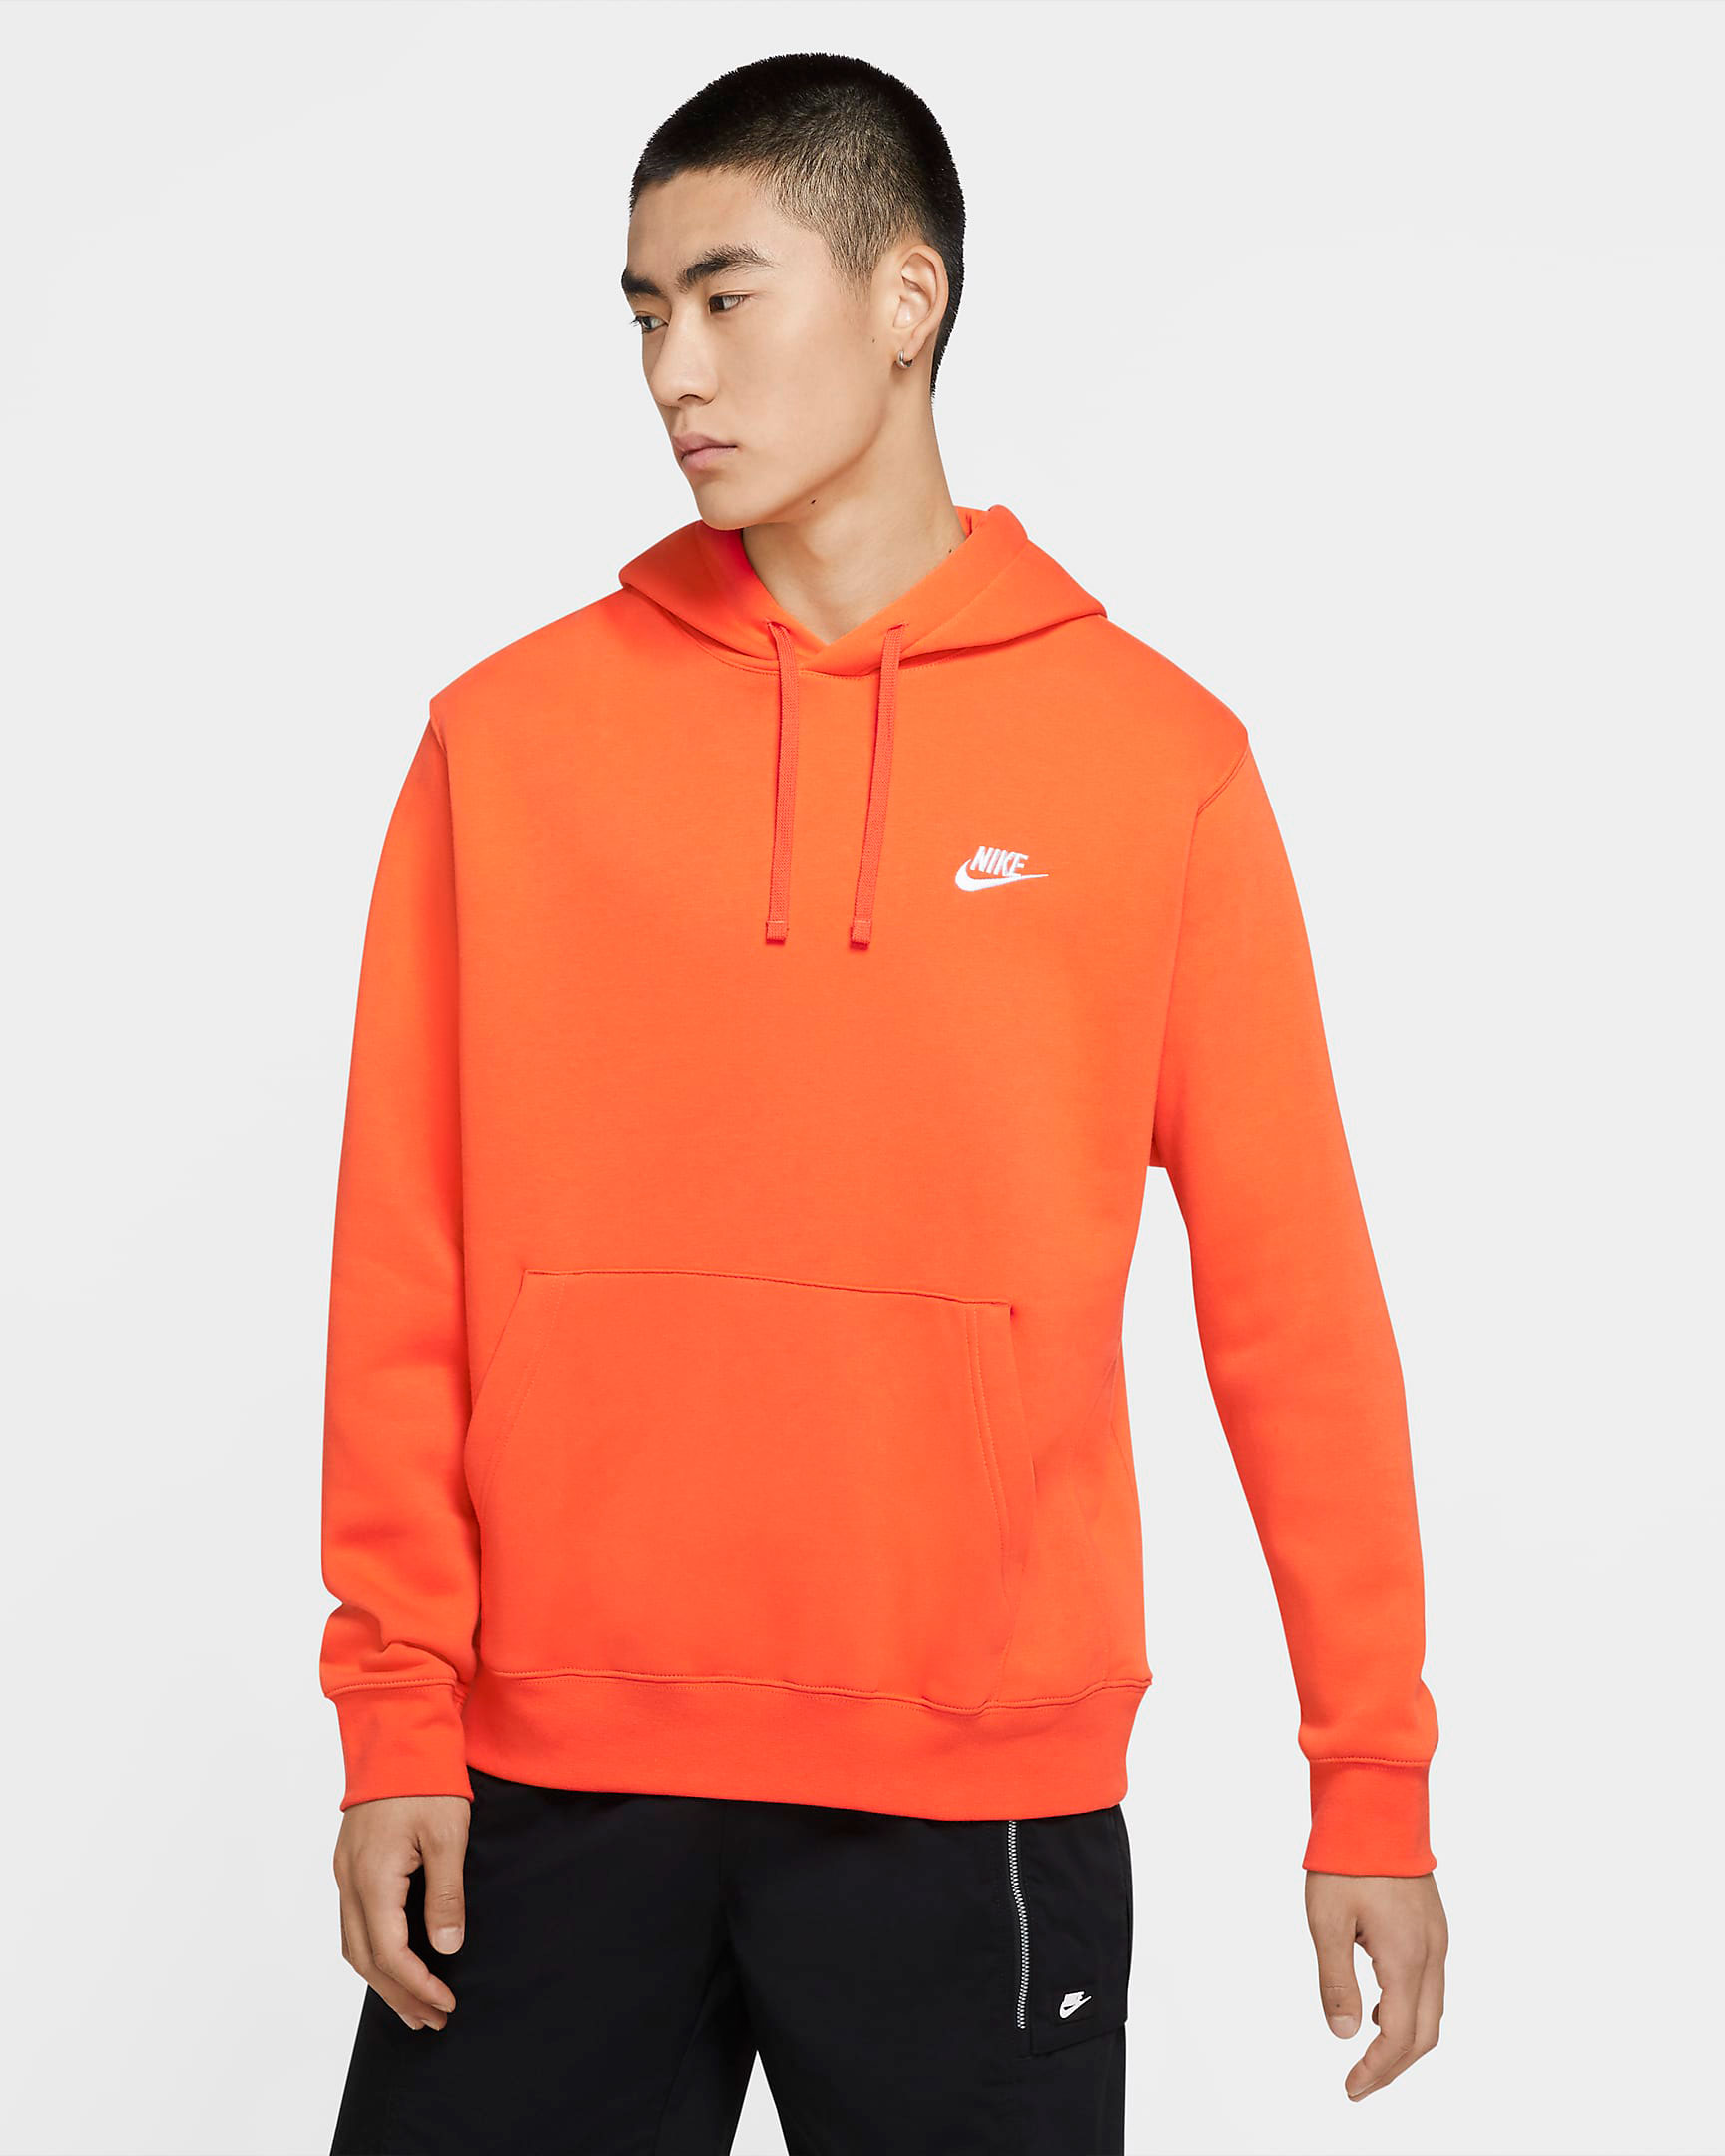 nike-sportswear-club-fleece-orange-pullover-hoodie